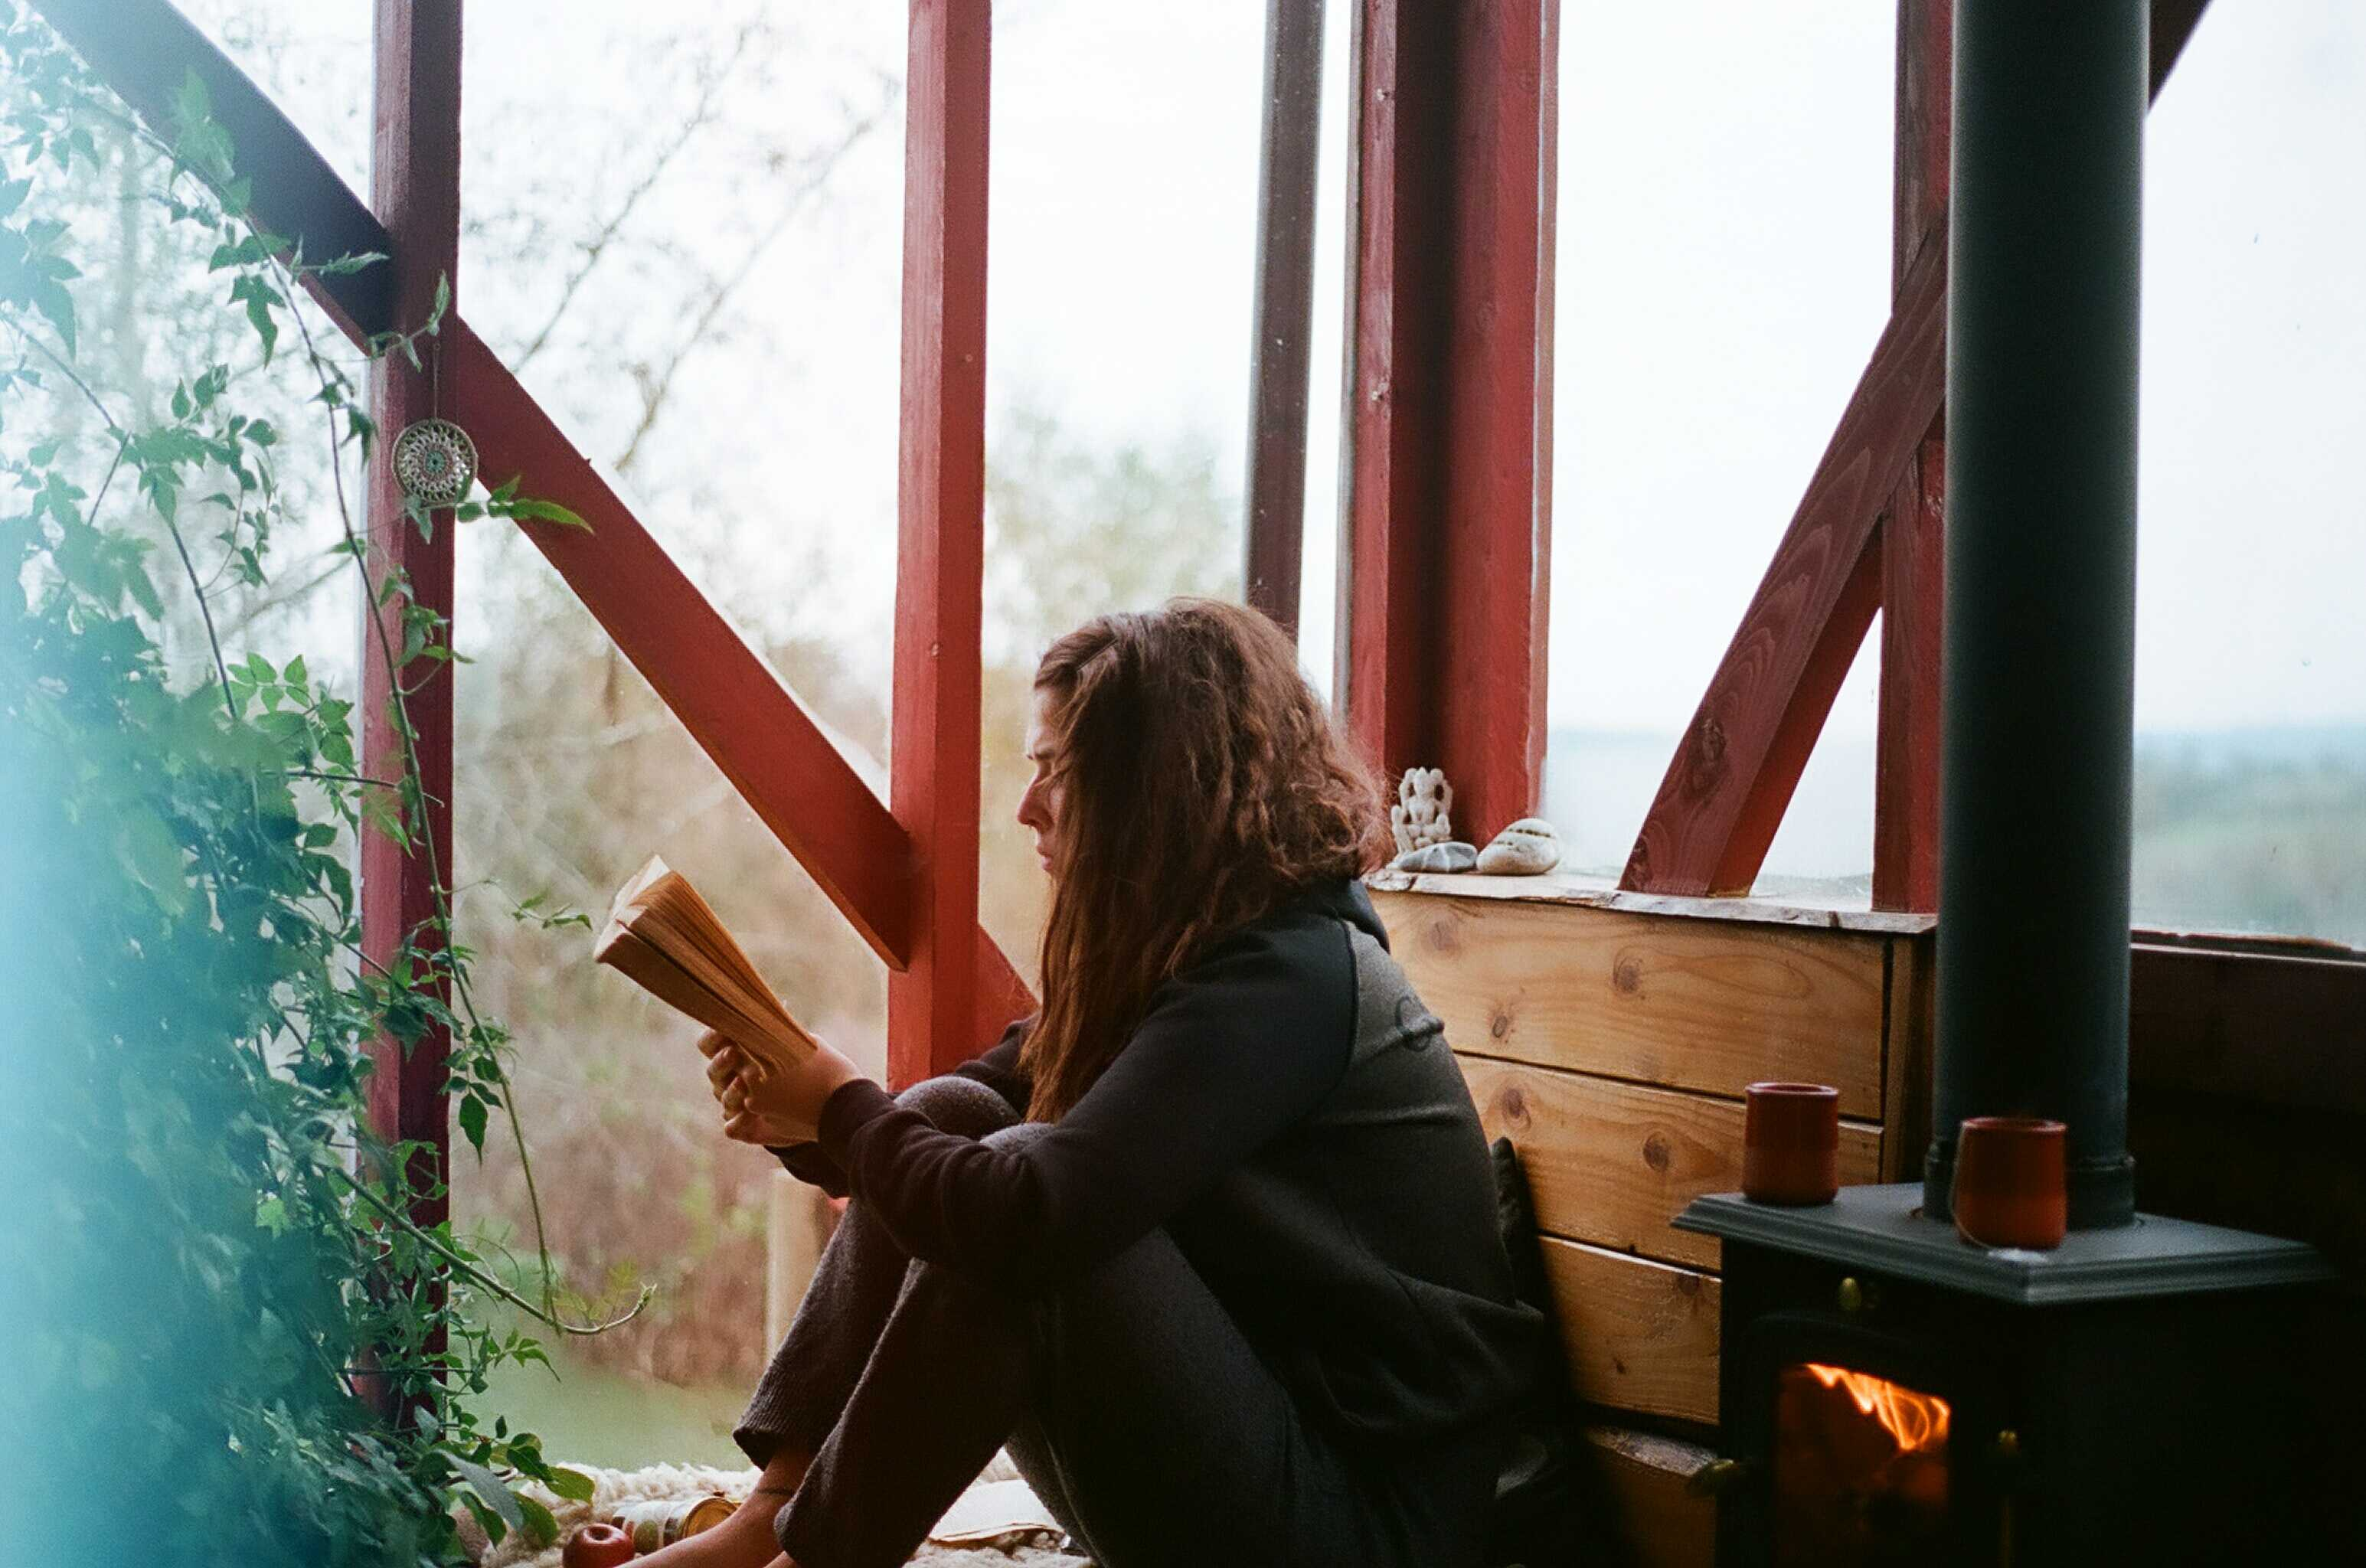 a woman is reading